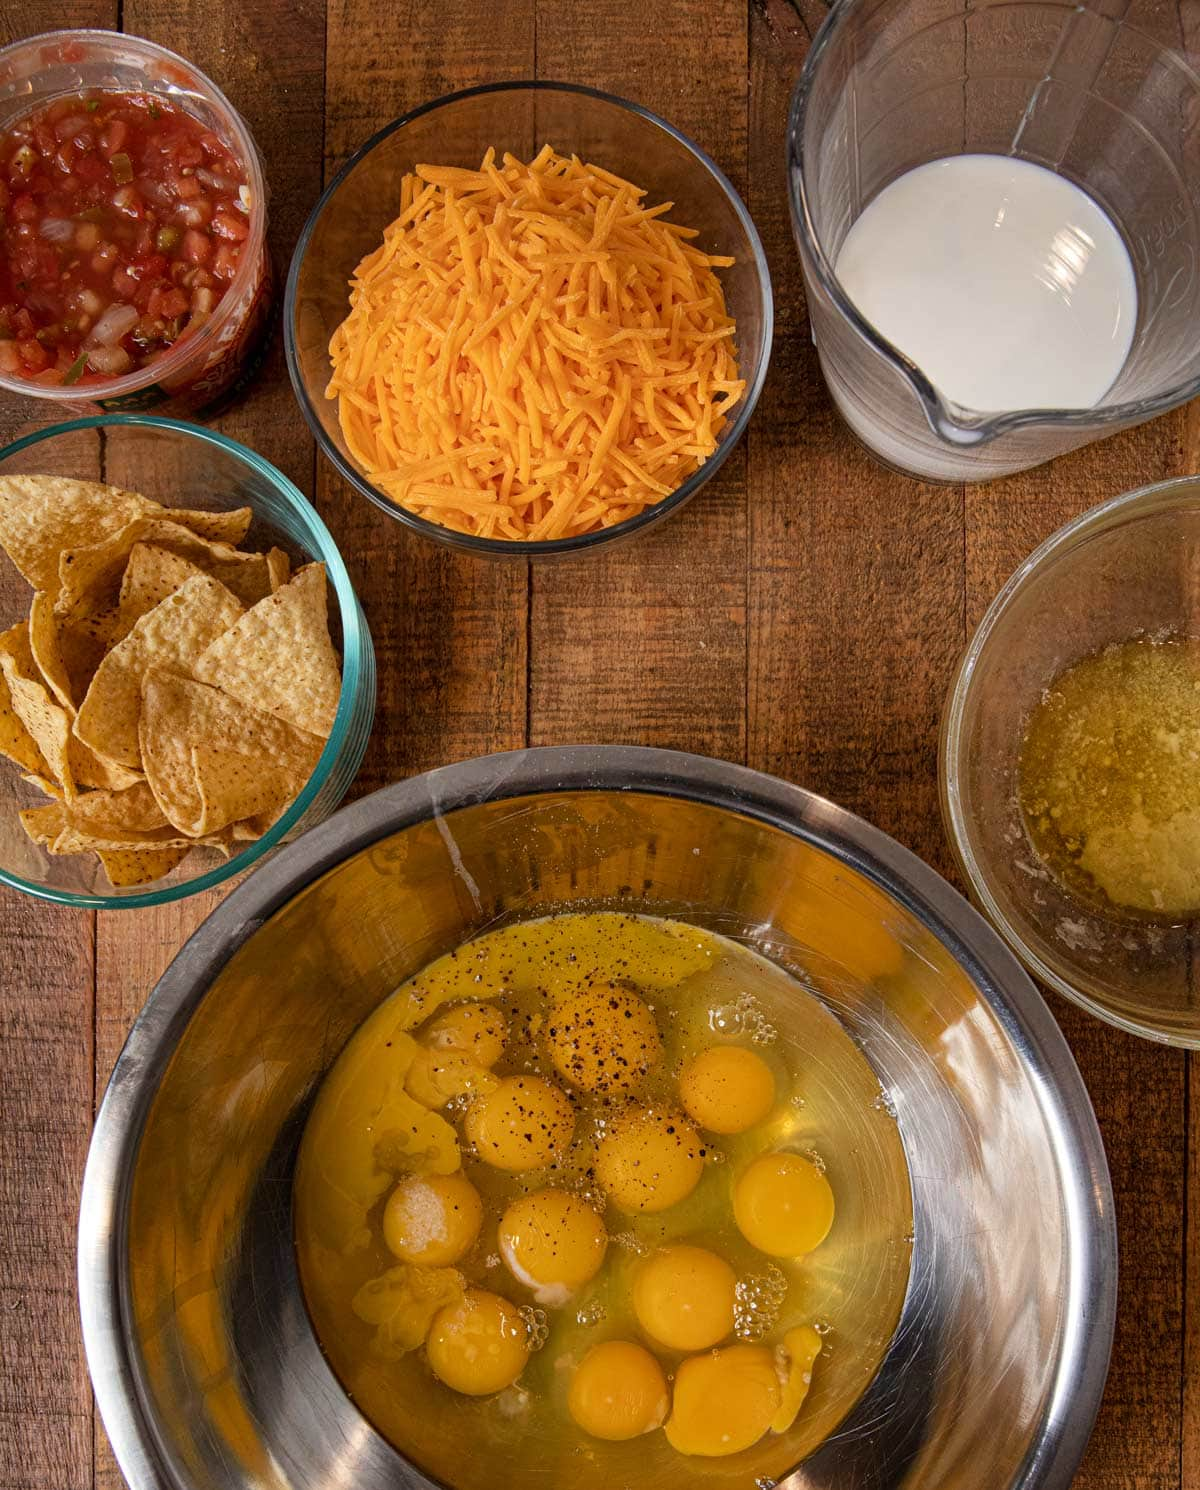 Cheesy Baked Chilaquiles ingredients in bowls